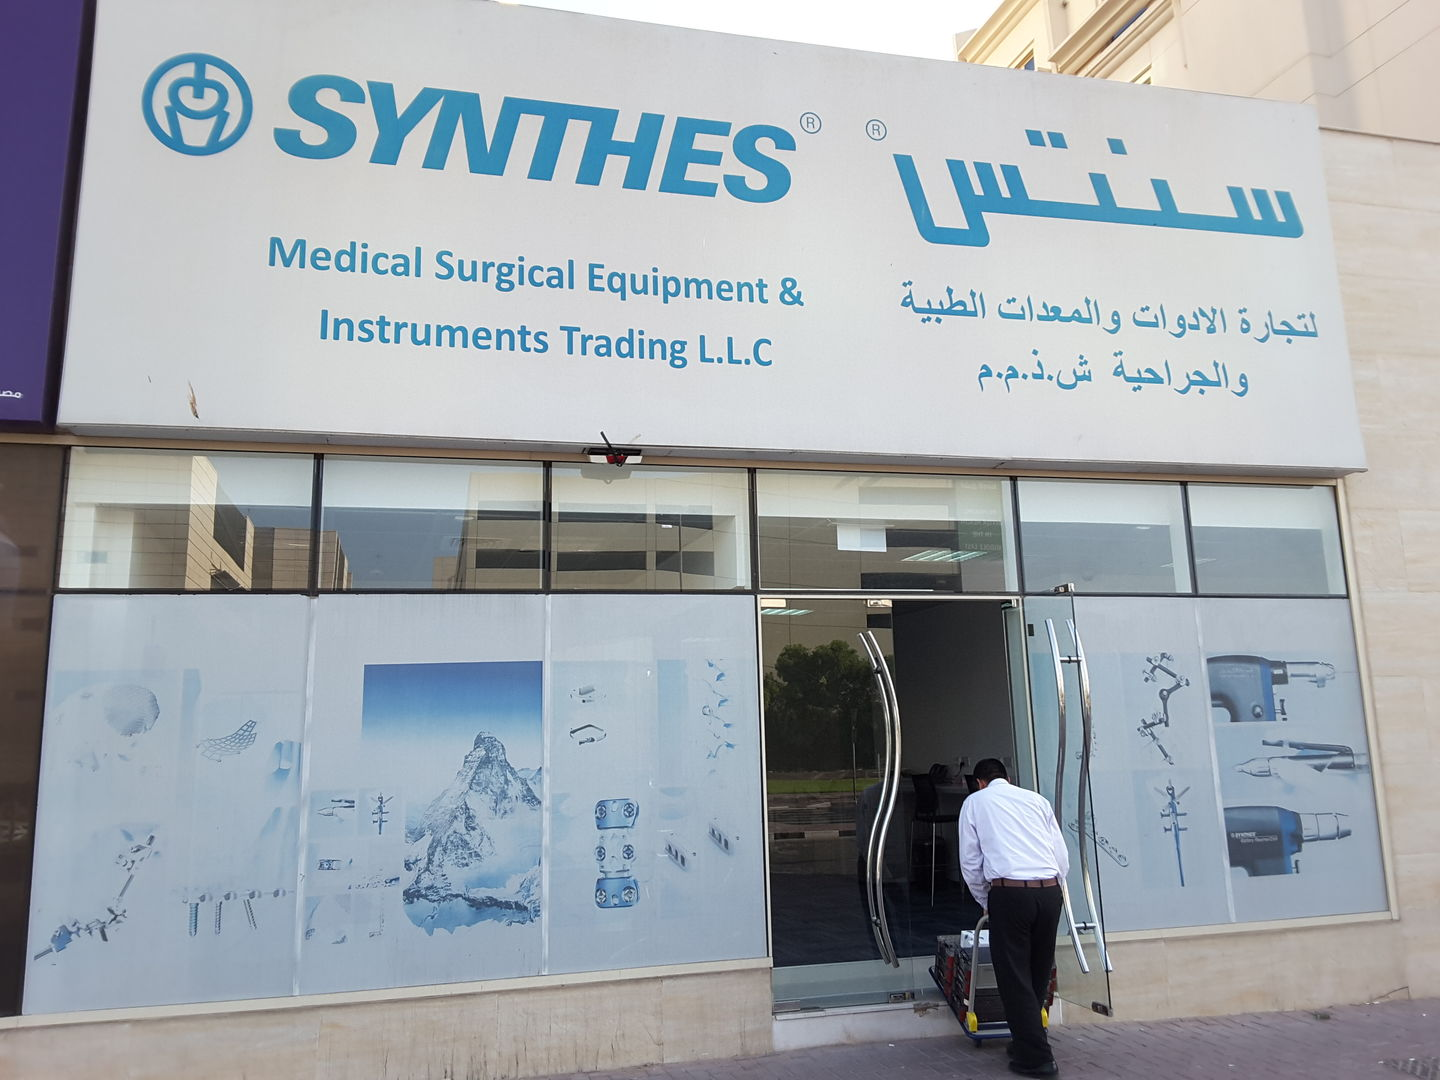 HiDubai-business-synthes-medical-surgical-equipment-instruments-trading-b2b-services-distributors-wholesalers-oud-metha-dubai-2